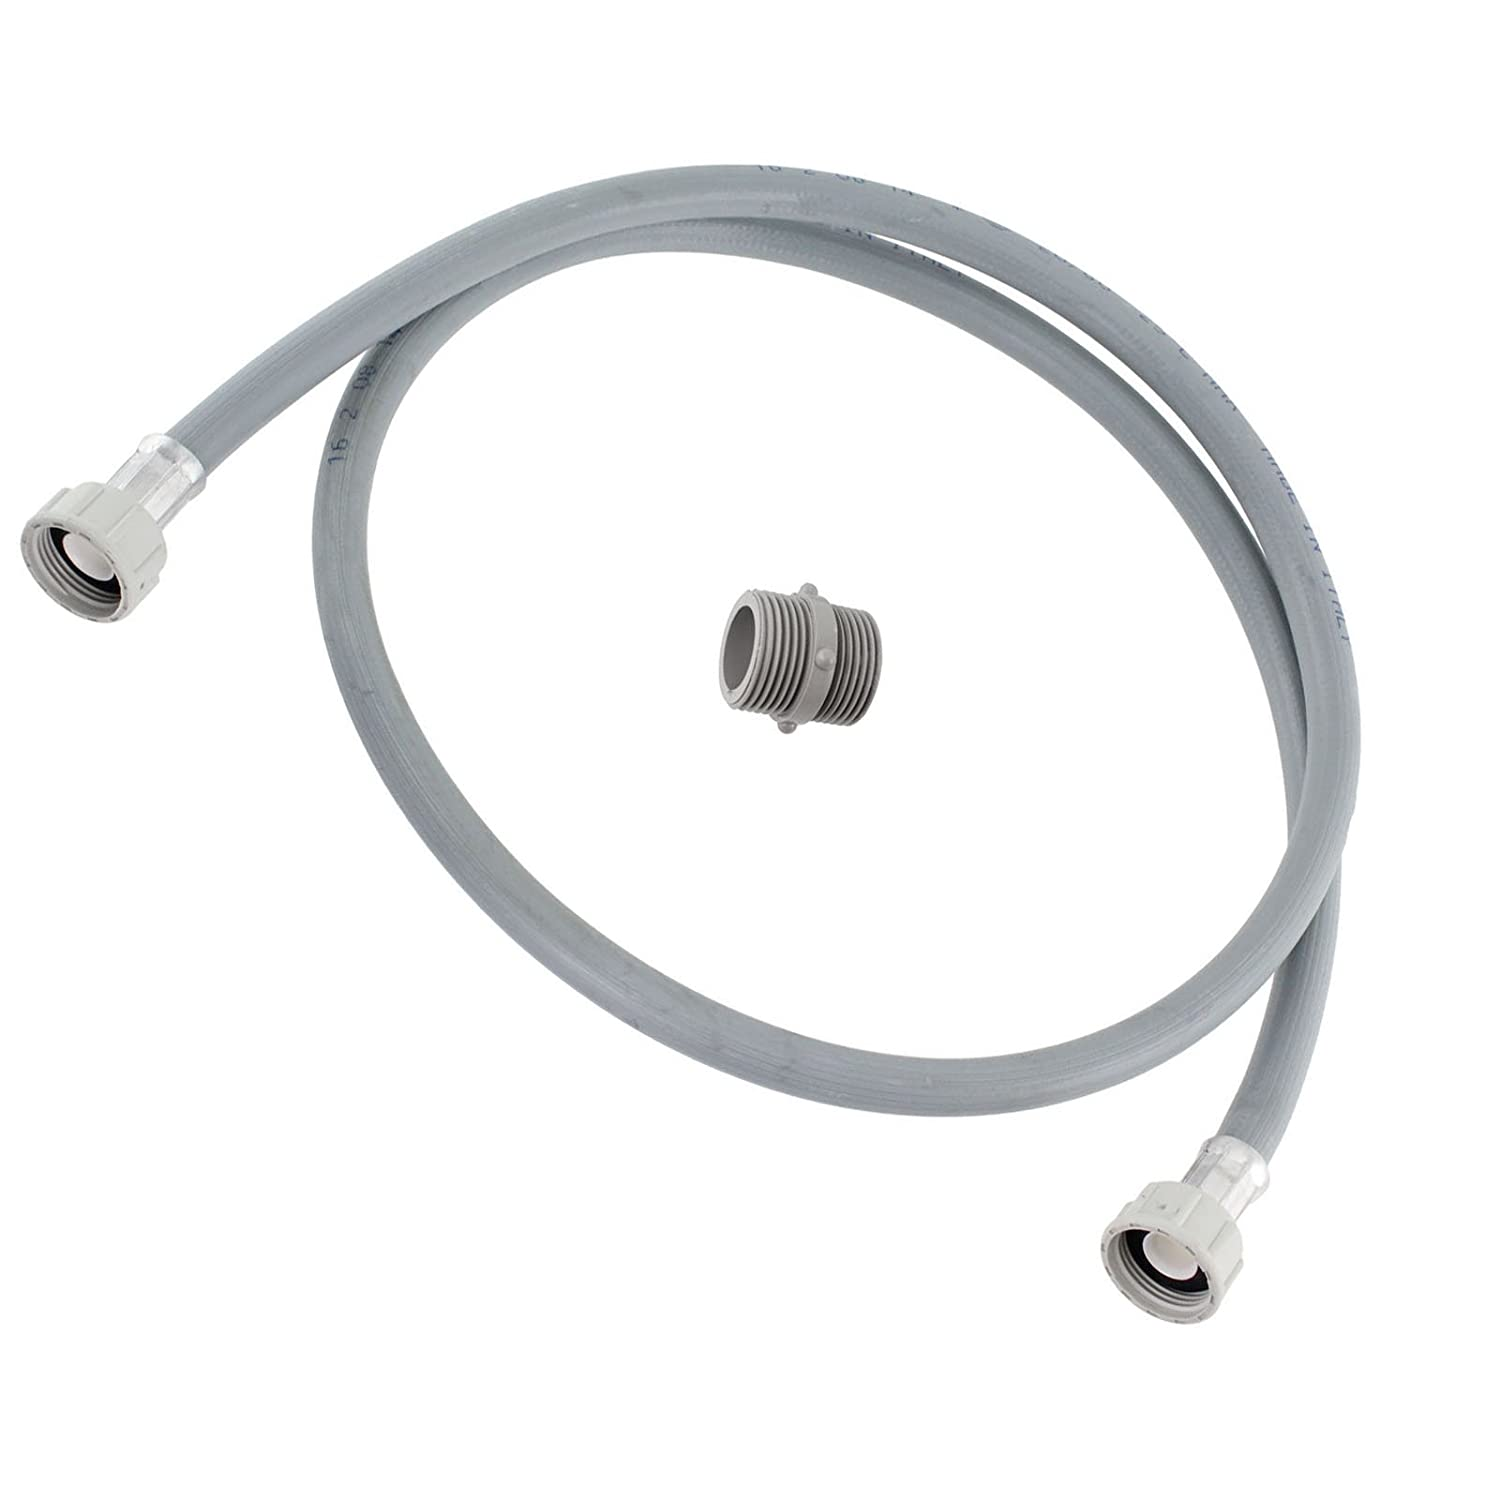 Spares2go Straight End Cold Water Fill Inlet Hose Extension for Miele Dishwasher (1.5M)